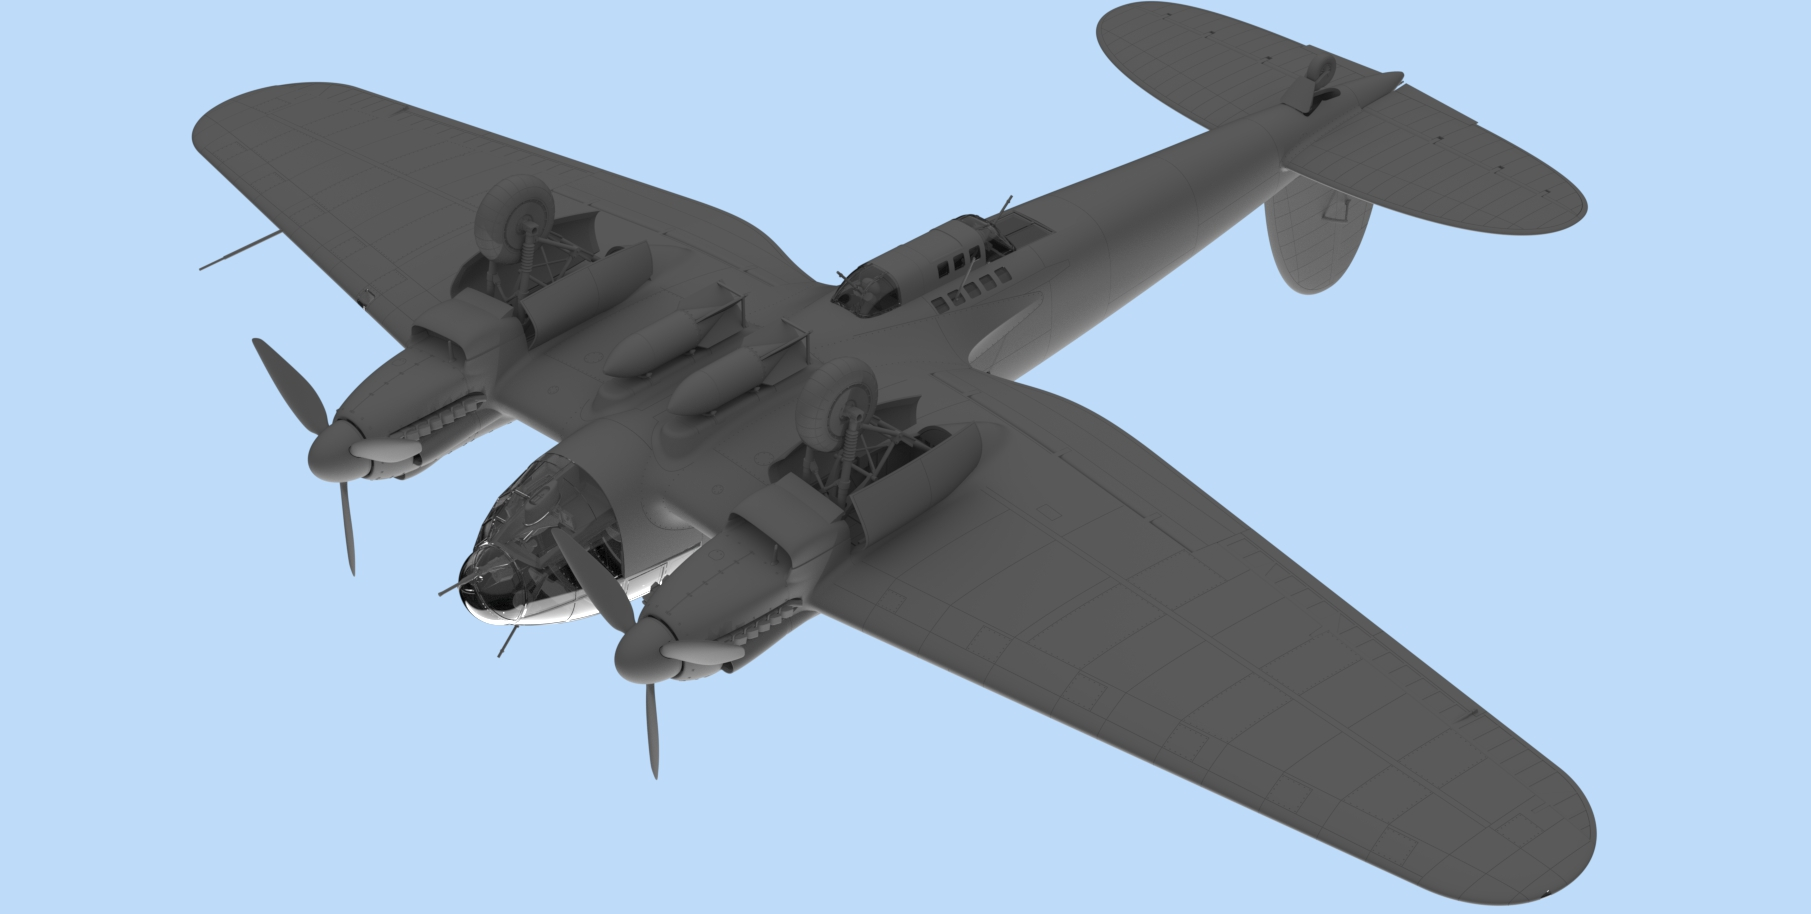 1/48 He 111H-6 North Africa, WWII German Bomber 48265